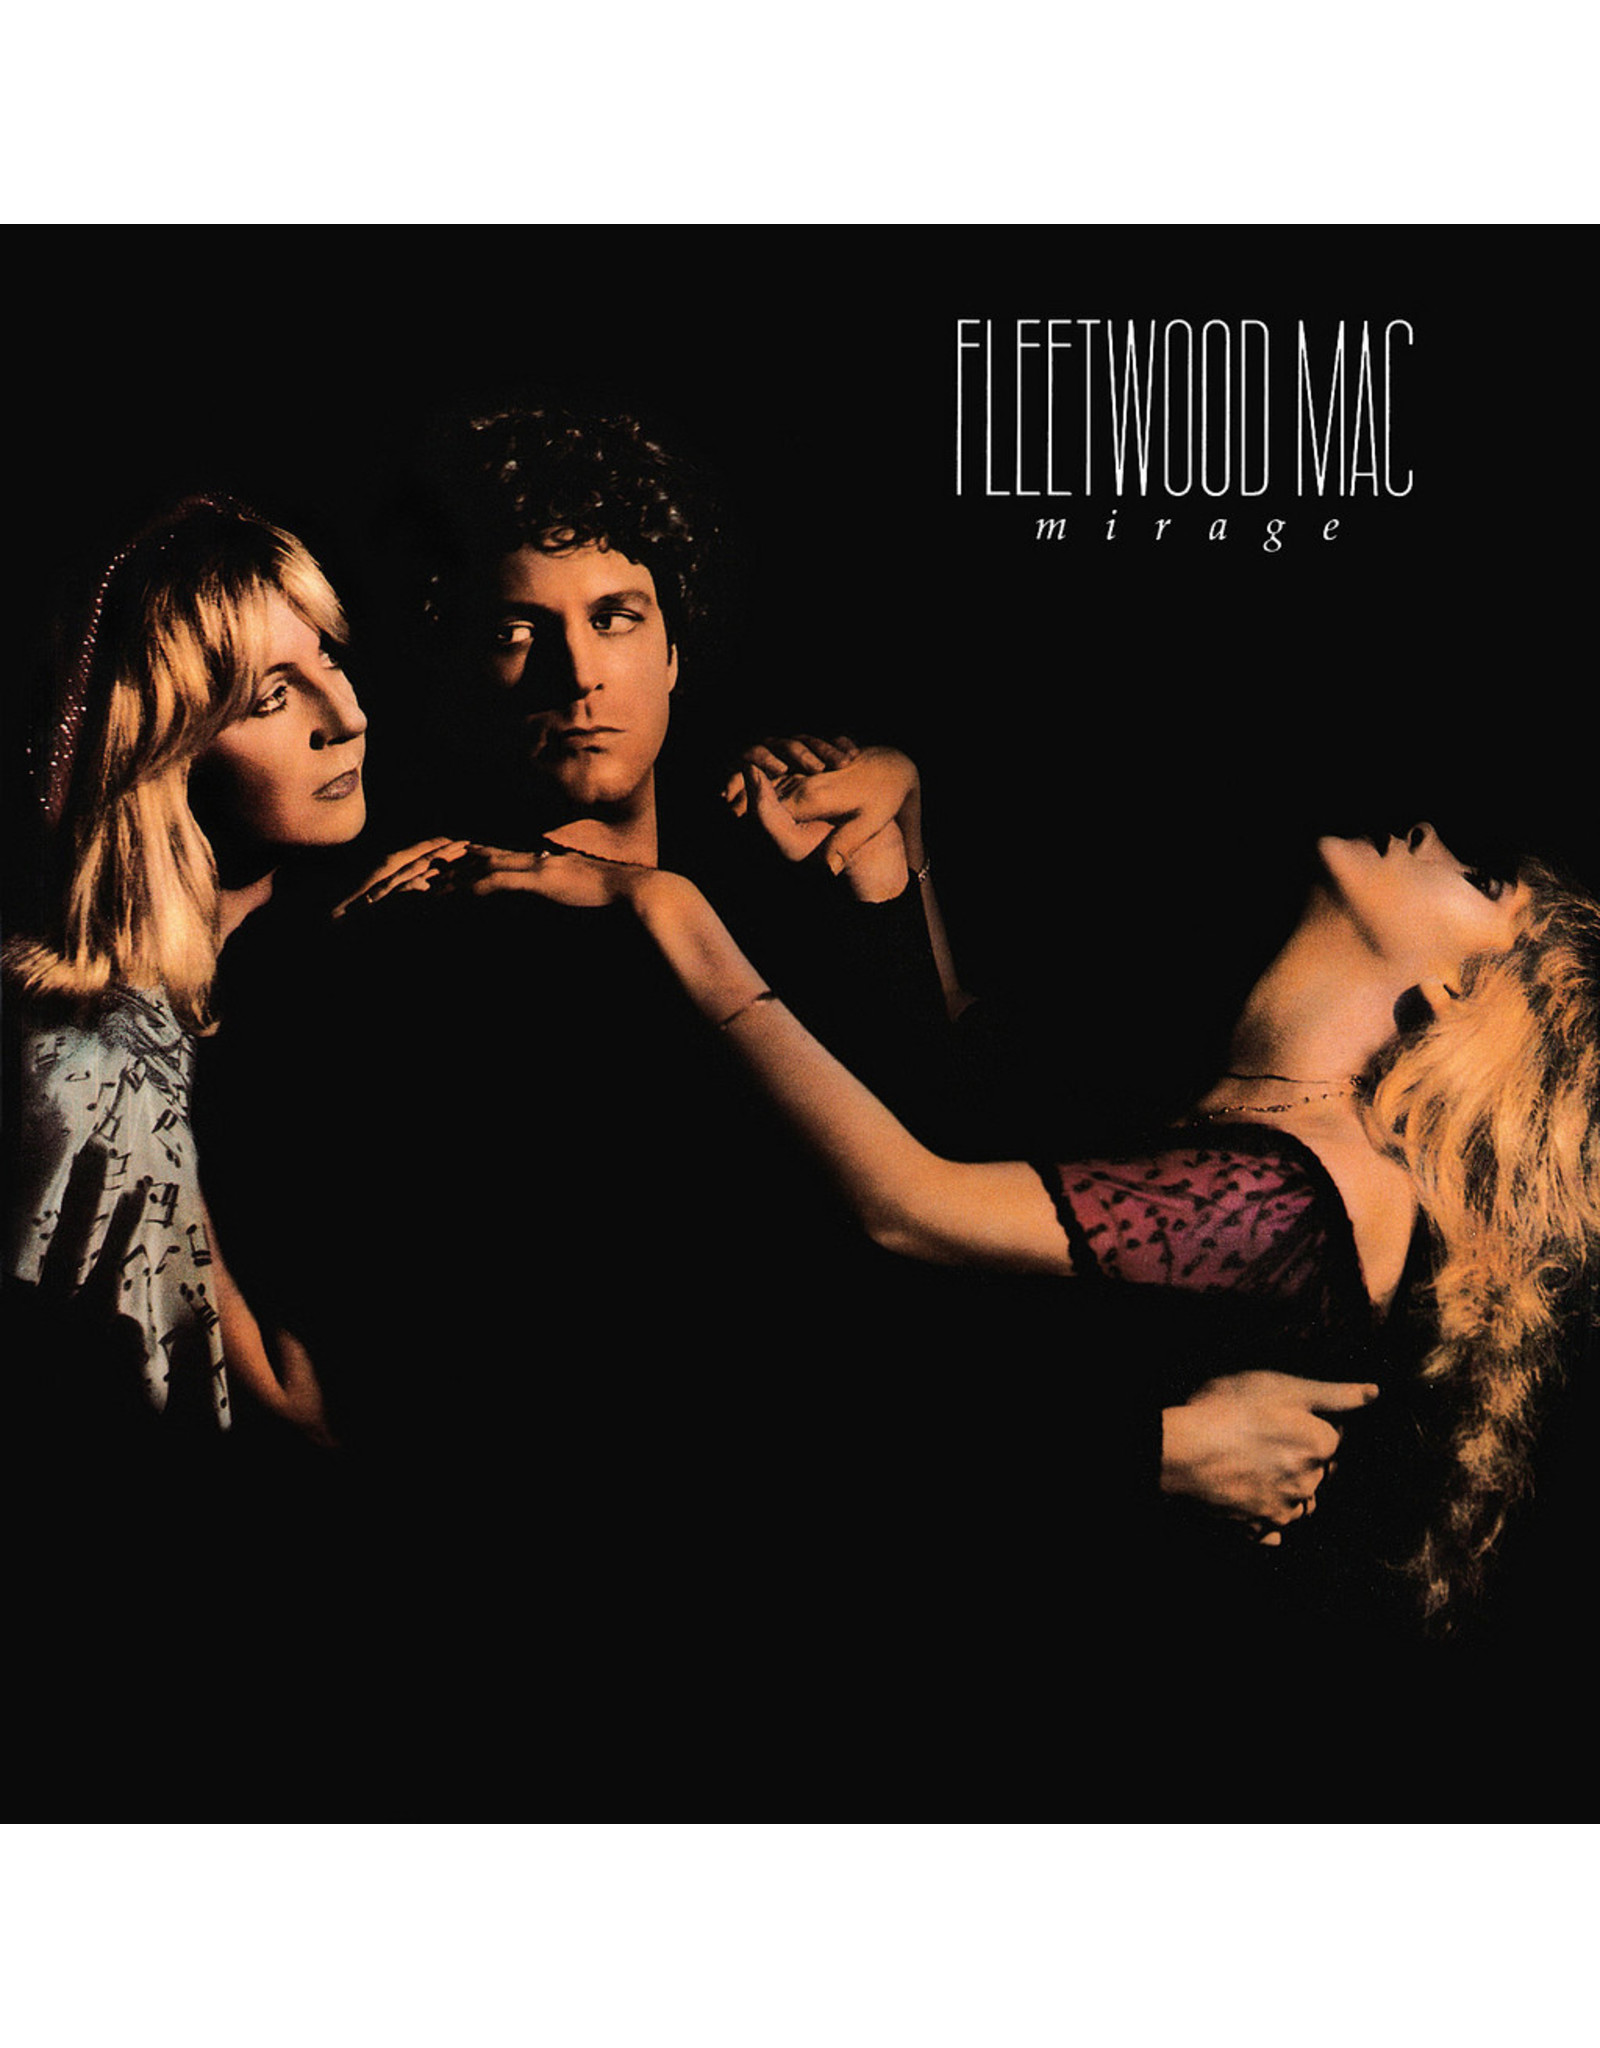 Fleetwood Mac - Mirage (Violet Vinyl)